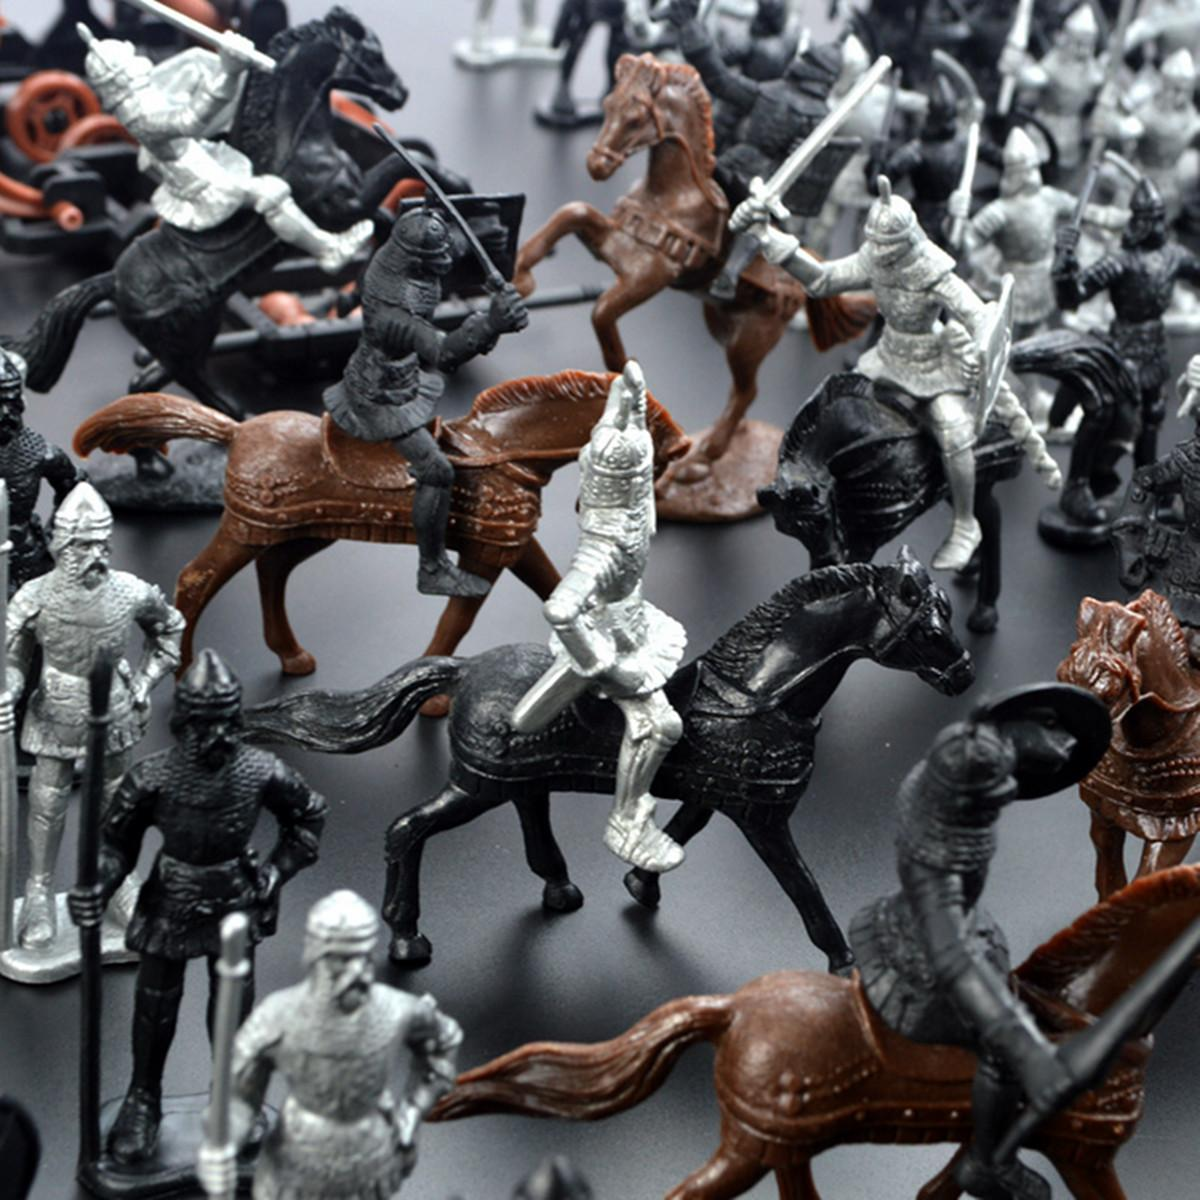 Plastic 28Pcs/Lot Medieval s Soldiers <font><b>Model</b></font> <font><b>Toys</b></font> <font><b>Horses</b></font> Soldiers <font><b>Figures</b></font> <font><b>Models</b></font> Play Kit Children Educational <font><b>Toy</b></font> Gifts image